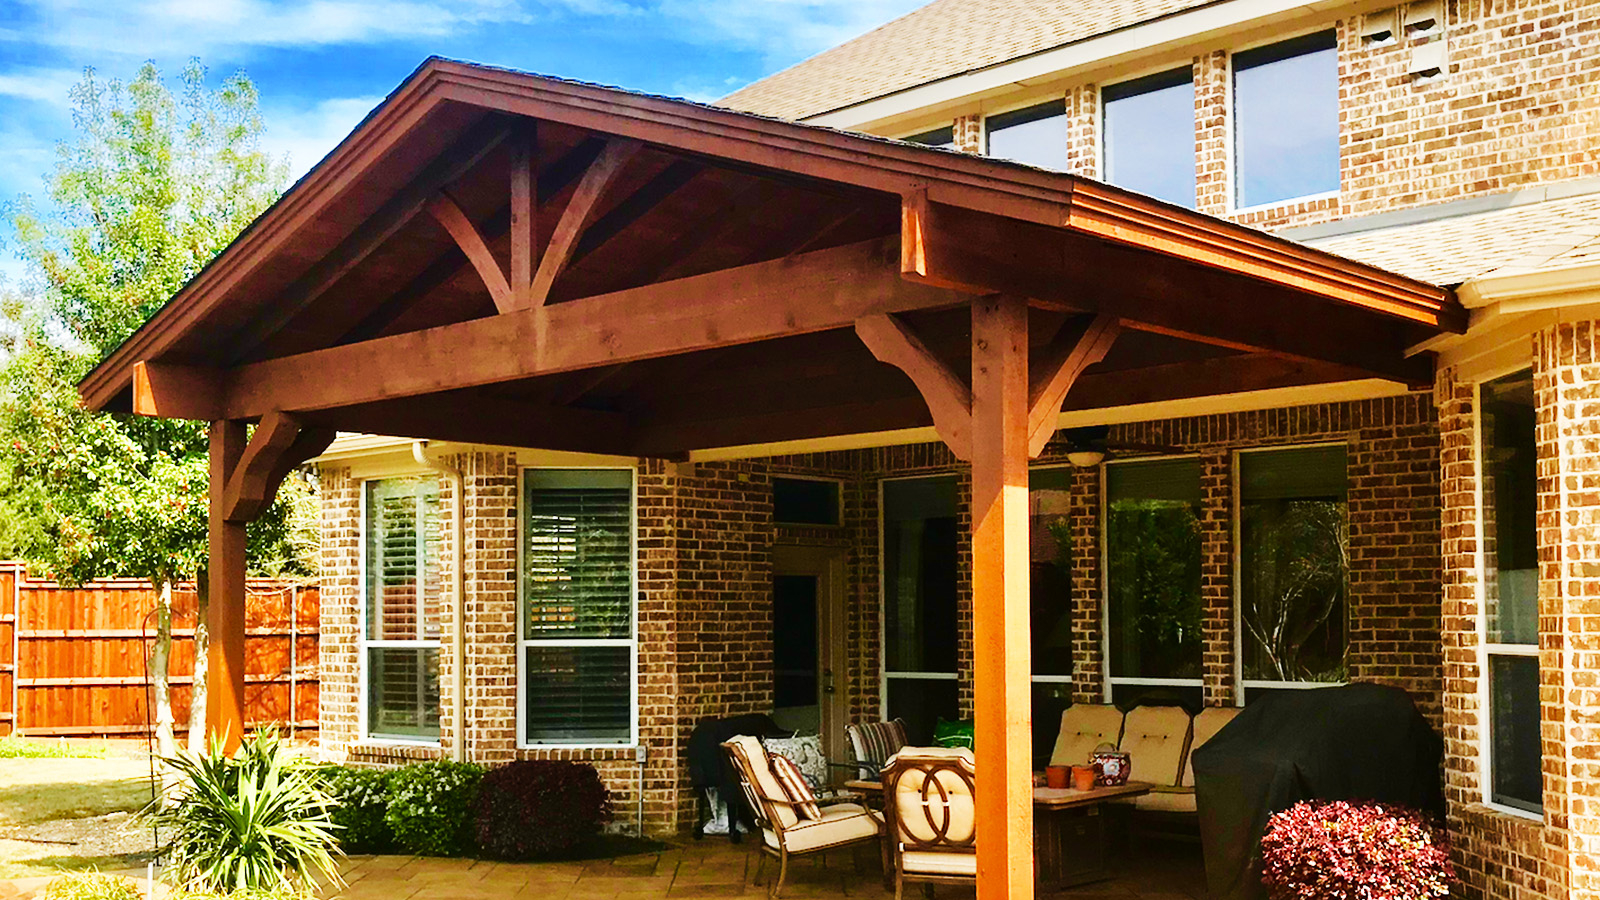 10x20 Patio Cover Plans • Fence Ideas Site on 10X20 Patio Ideas id=29150